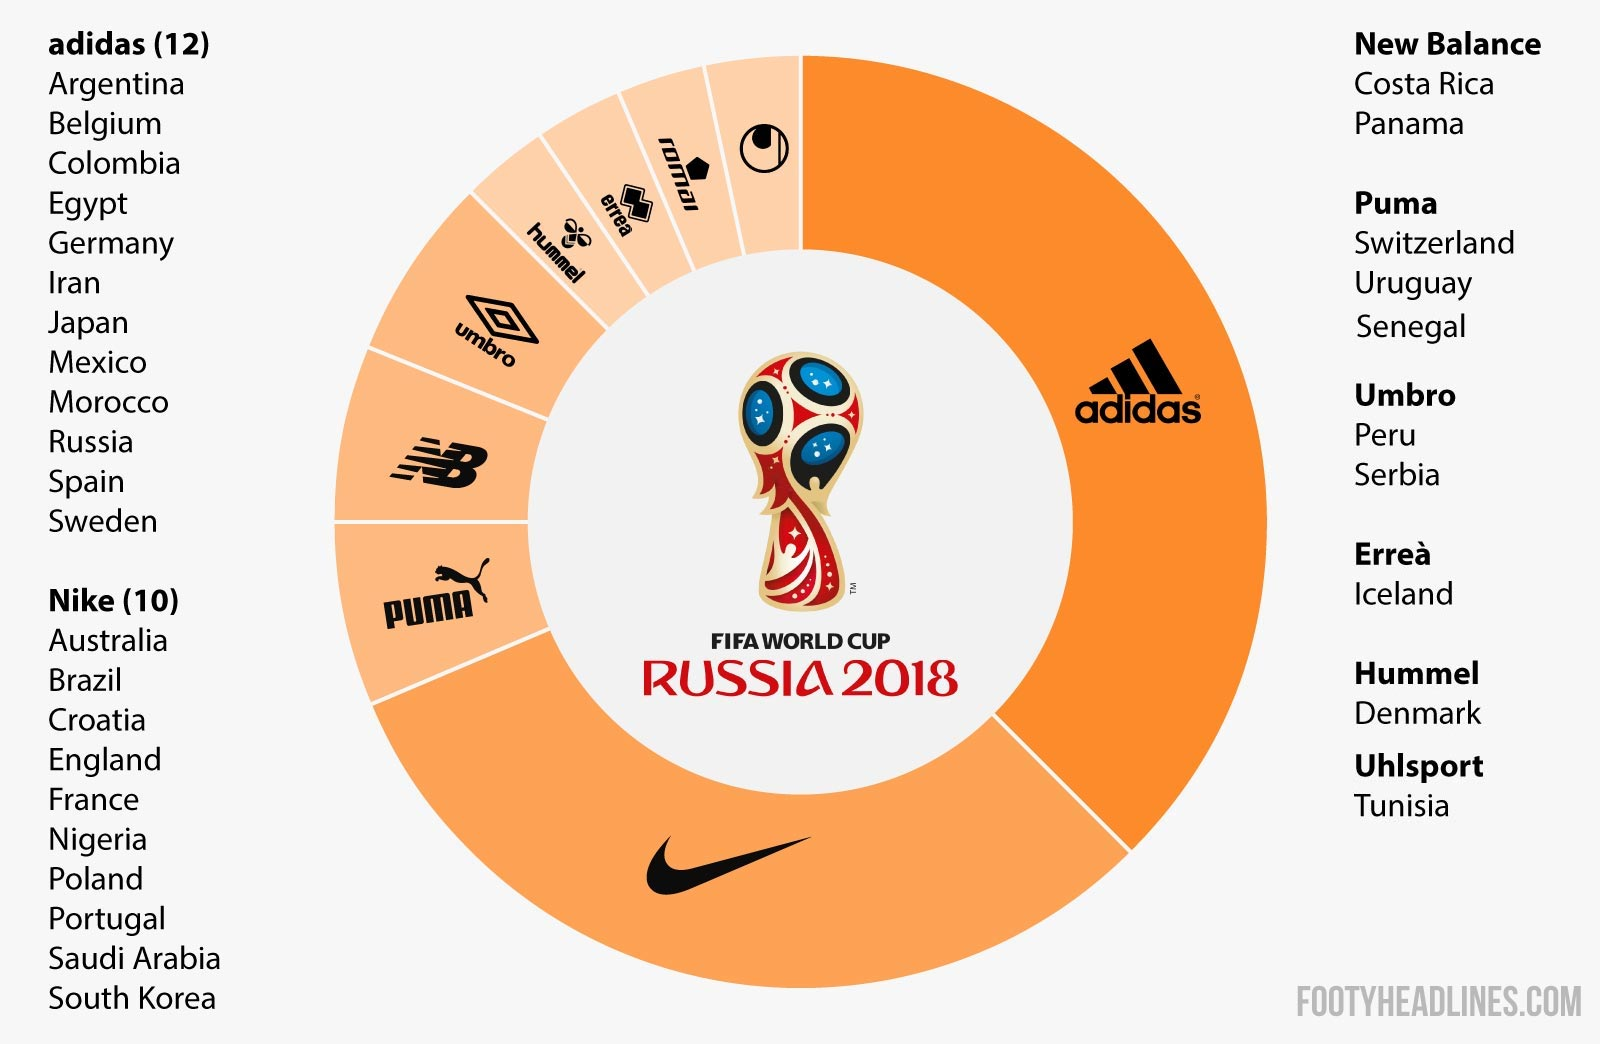 520f0f22fb8 Constantly updated with the latest available info and leaks, the 2018 World  Cup Kit Overview is the place see what every team will wear in Russia next  year.